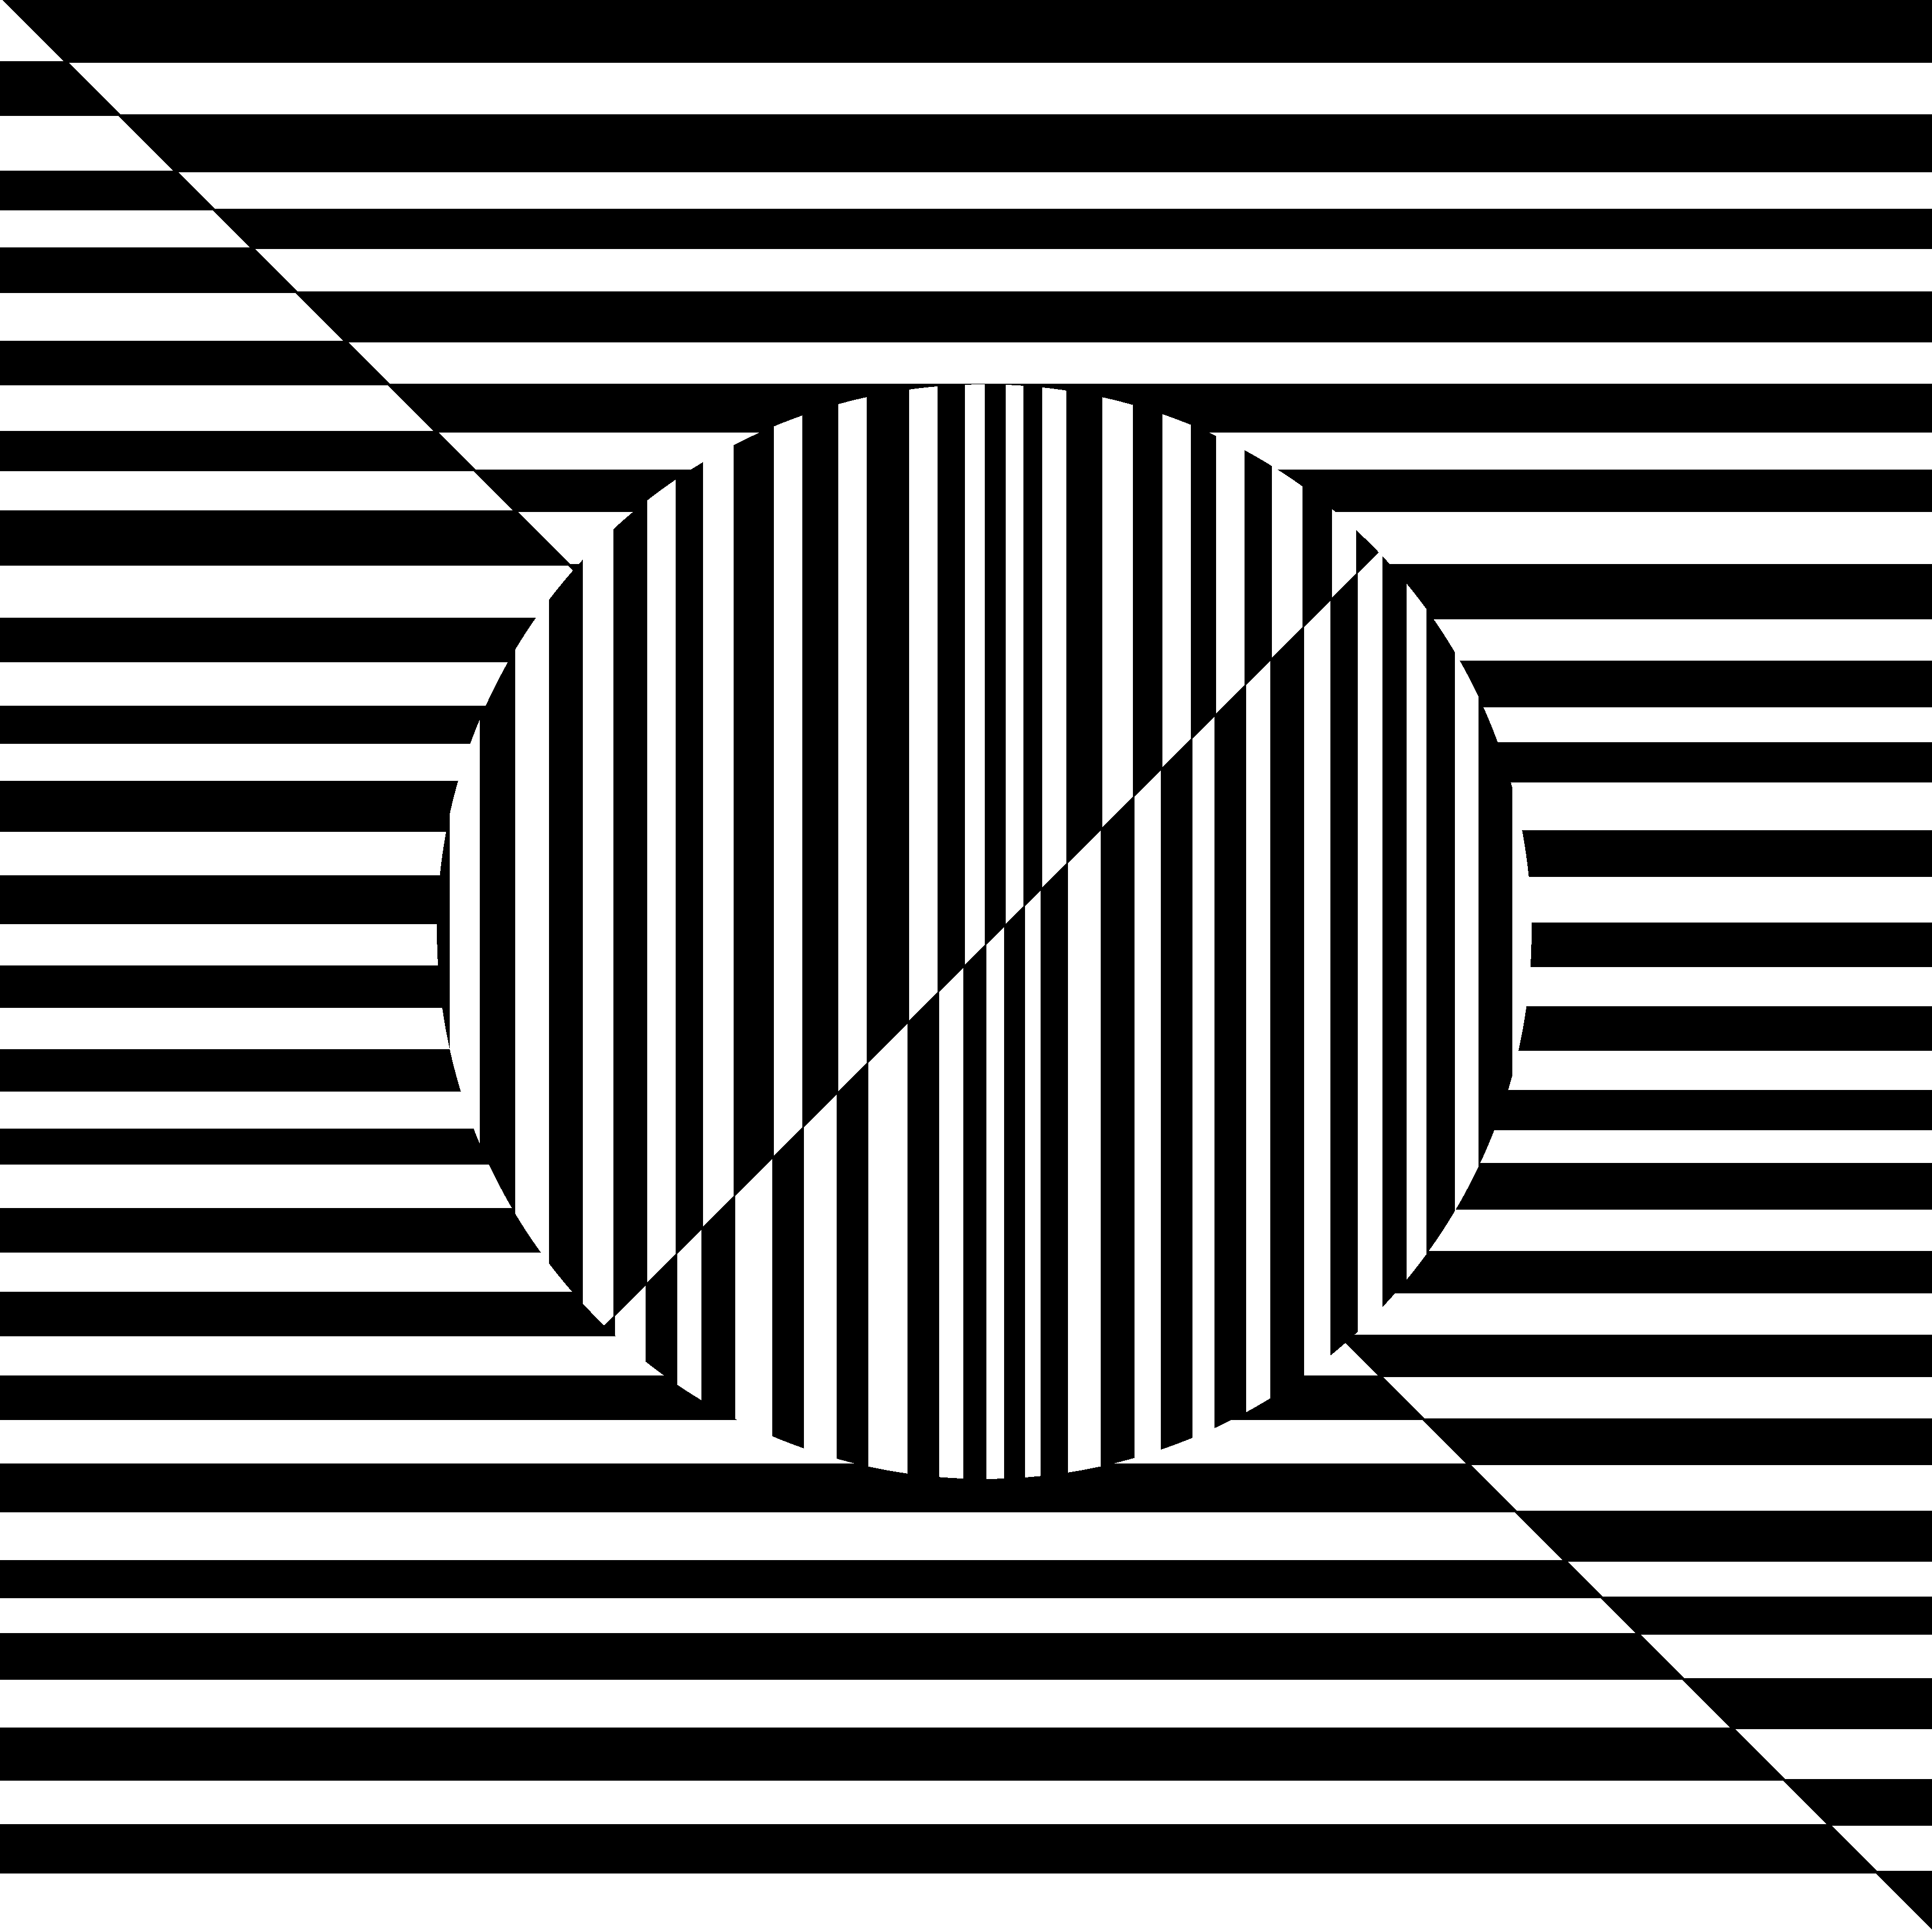 Line Art Illusion : Optical illusion by akiyoshi kitaoka